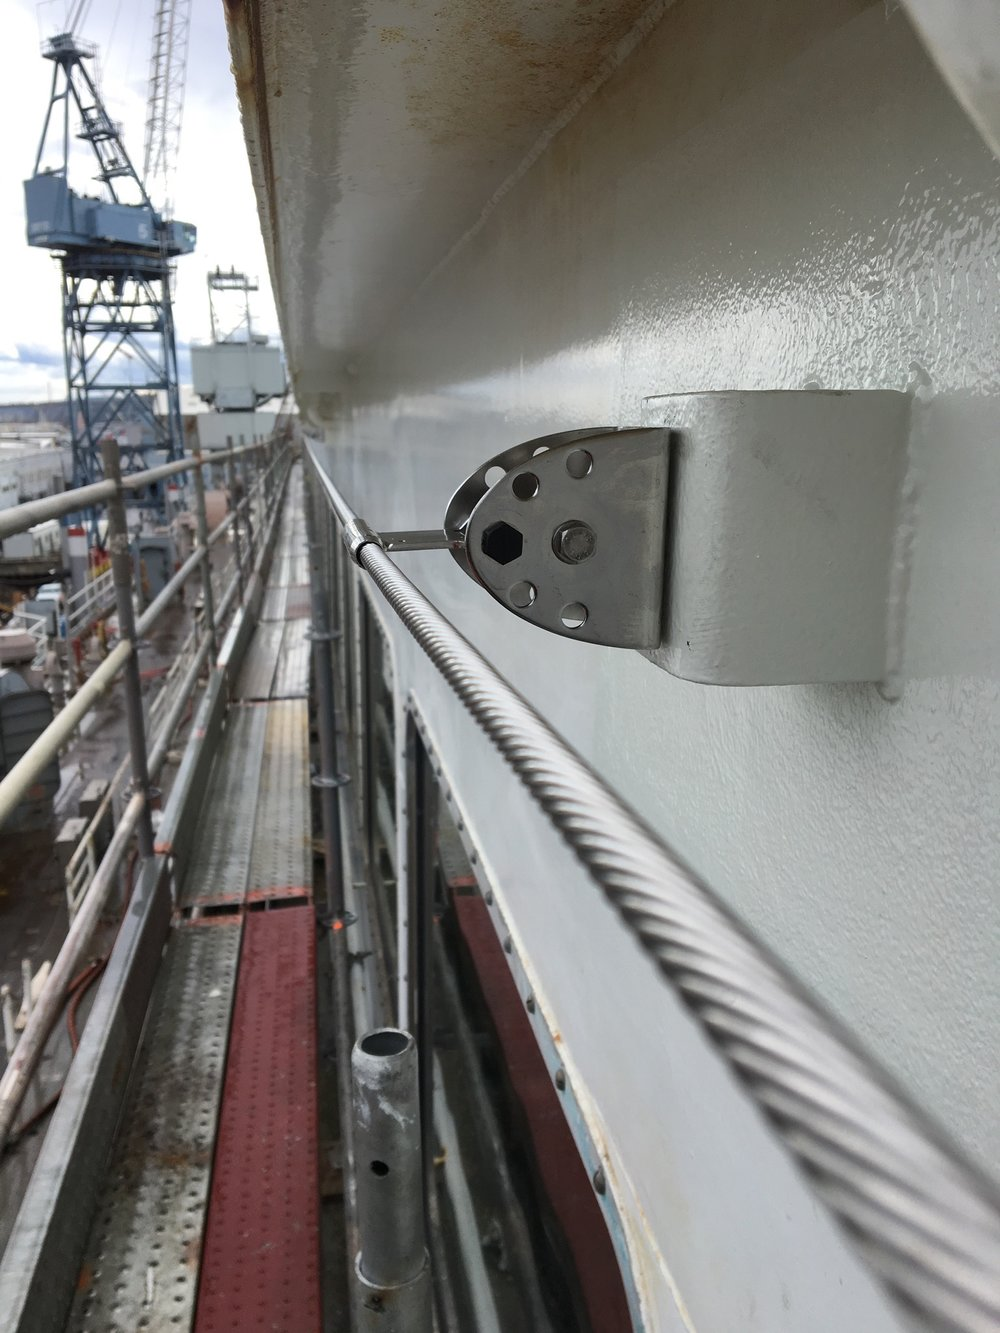 Horizontal lifeline on ferry boat for window washers